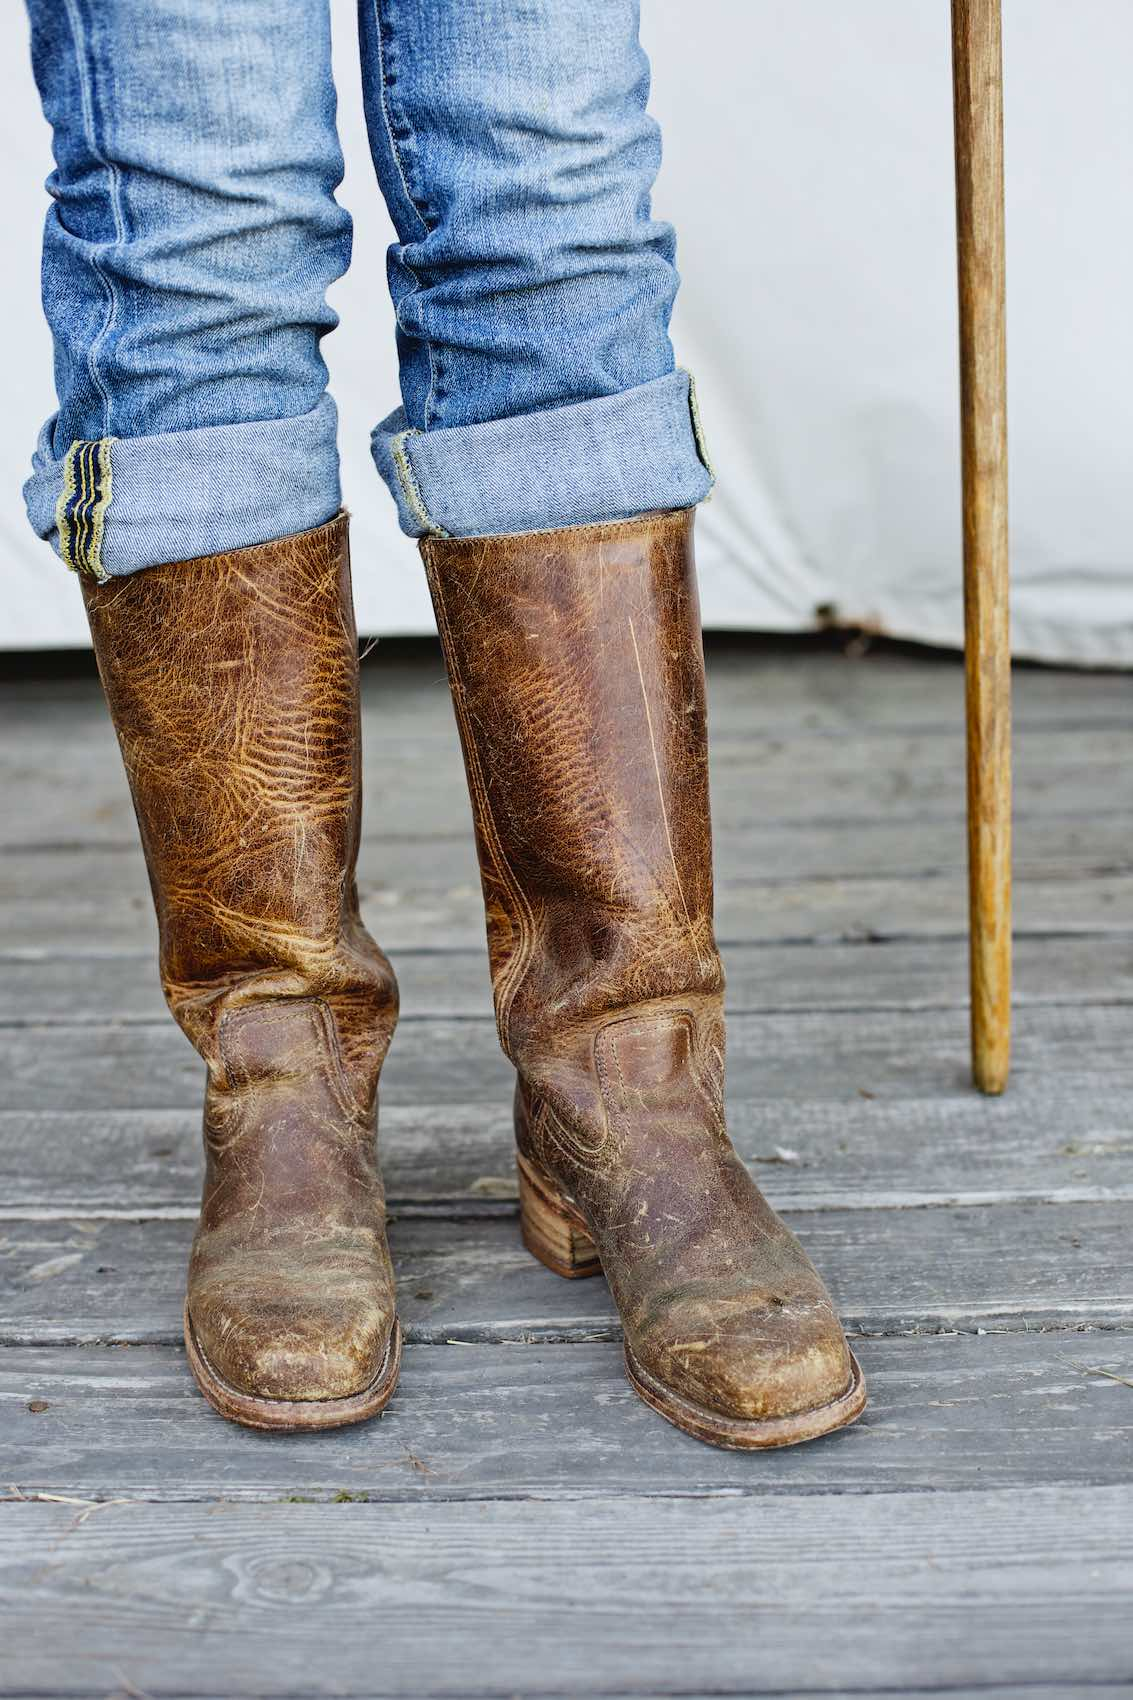 Jody Horton Photography - Leather boots of sheep farmer.